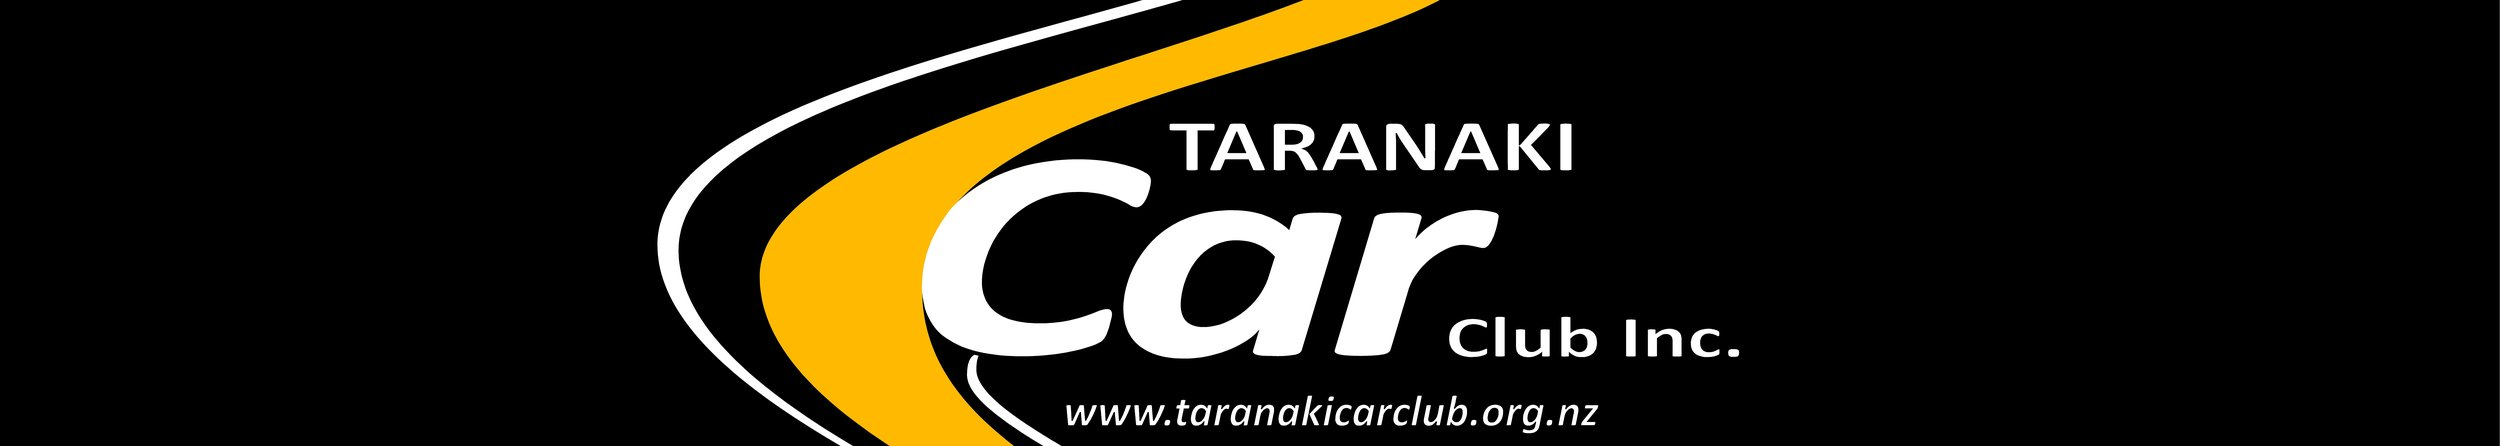 Taranaki car club window banner - $30 each